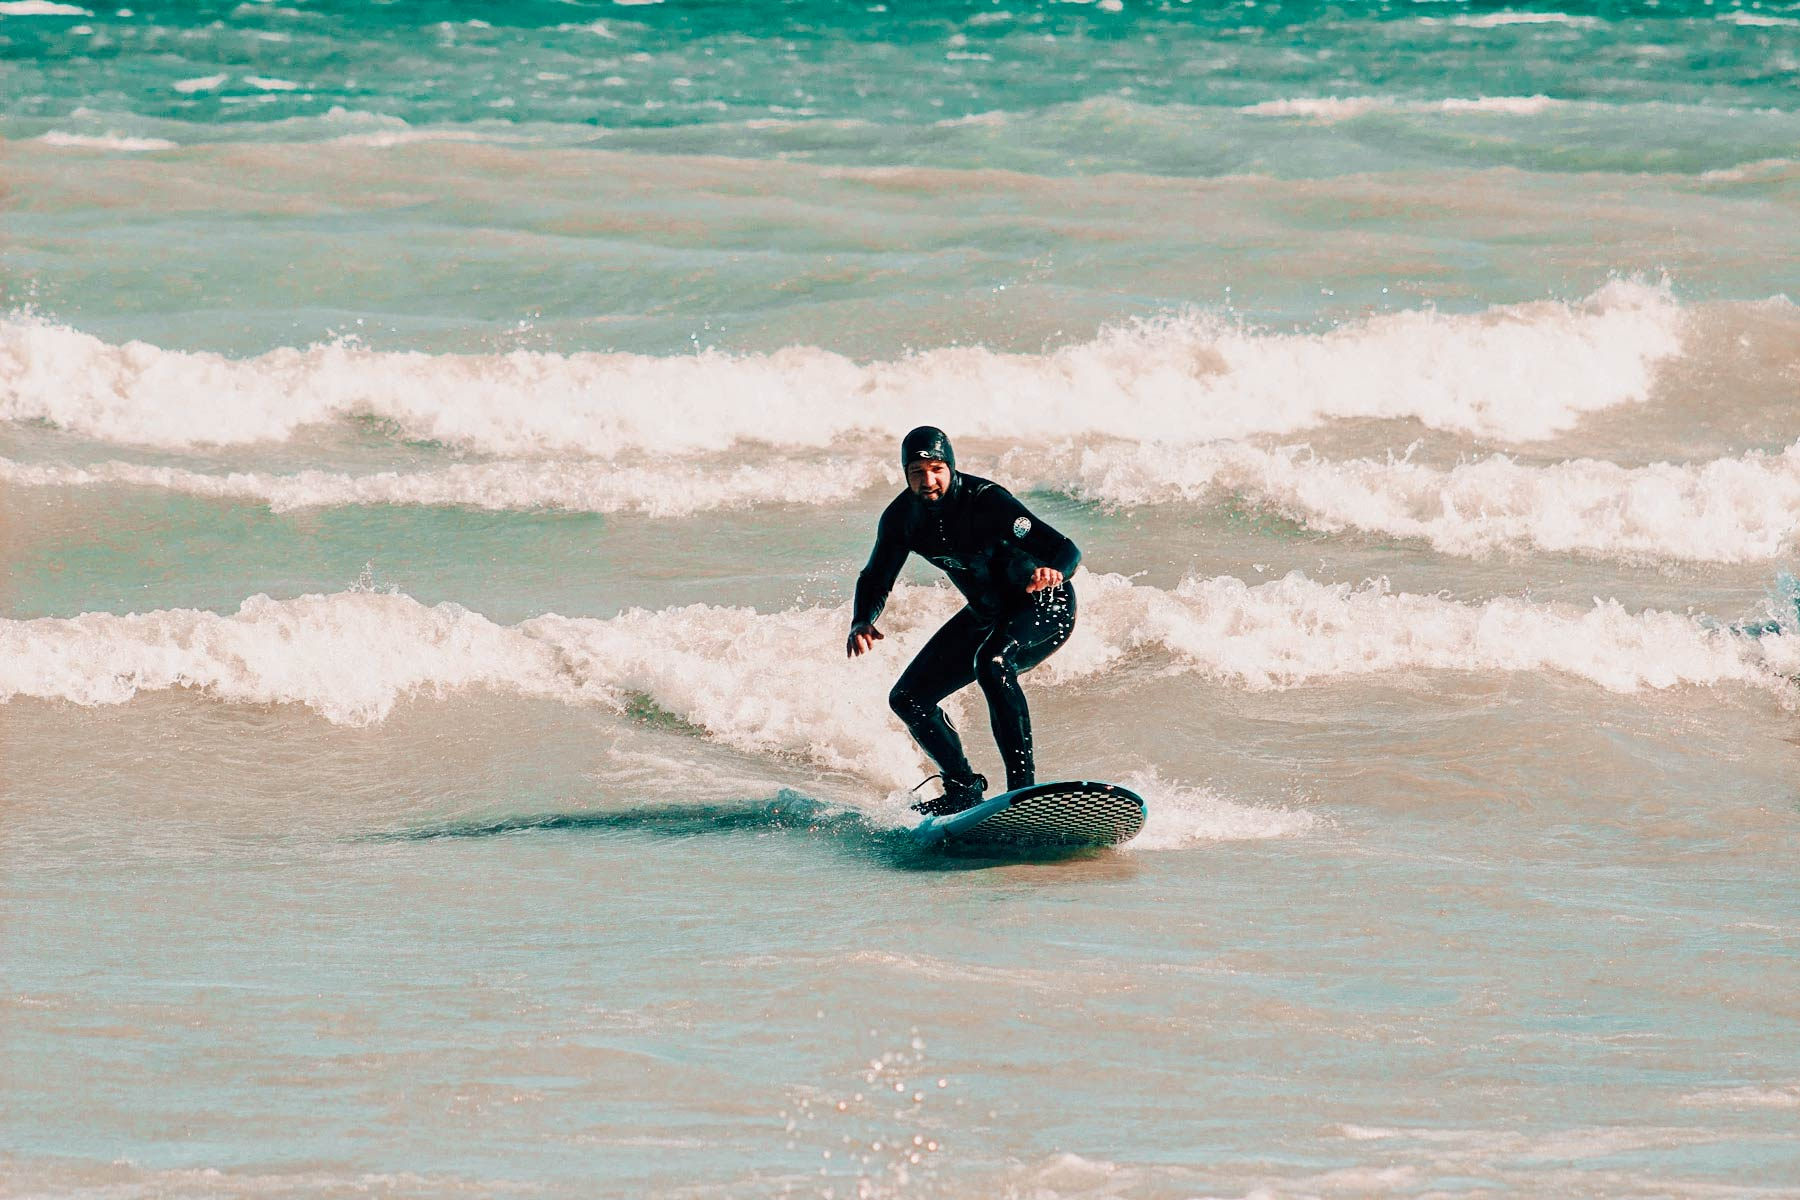 ISA-certified Surf school on the Great Lakes. Learn to Surf in Toronto